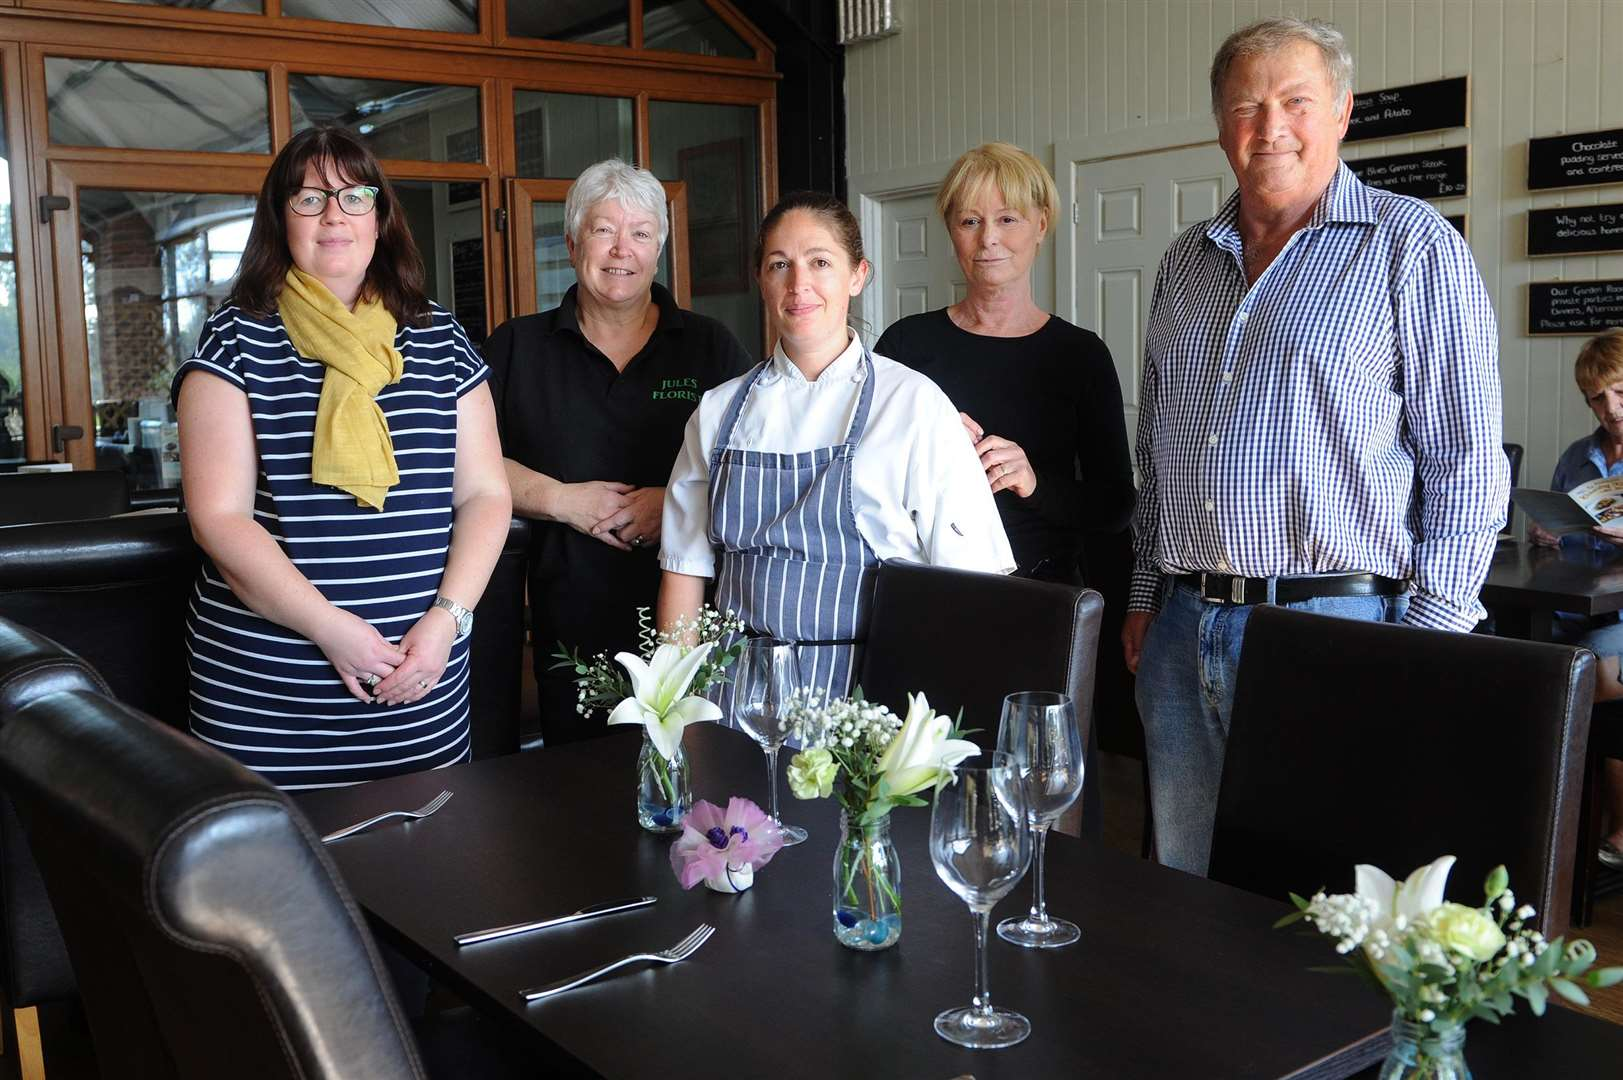 Assington Country Kitchen at The Barn has been extended and is now offering venues for weddings and parties...Pictured: Laura Phillips (Florist), Julie Ivory (Florist), Annie Reidy (Head Chef and Co-Owner), Ellen Gordon (Waitress) and Malcolm Long (Co-Owner)....PICTURE: Mecha Morton... .. (4821415)